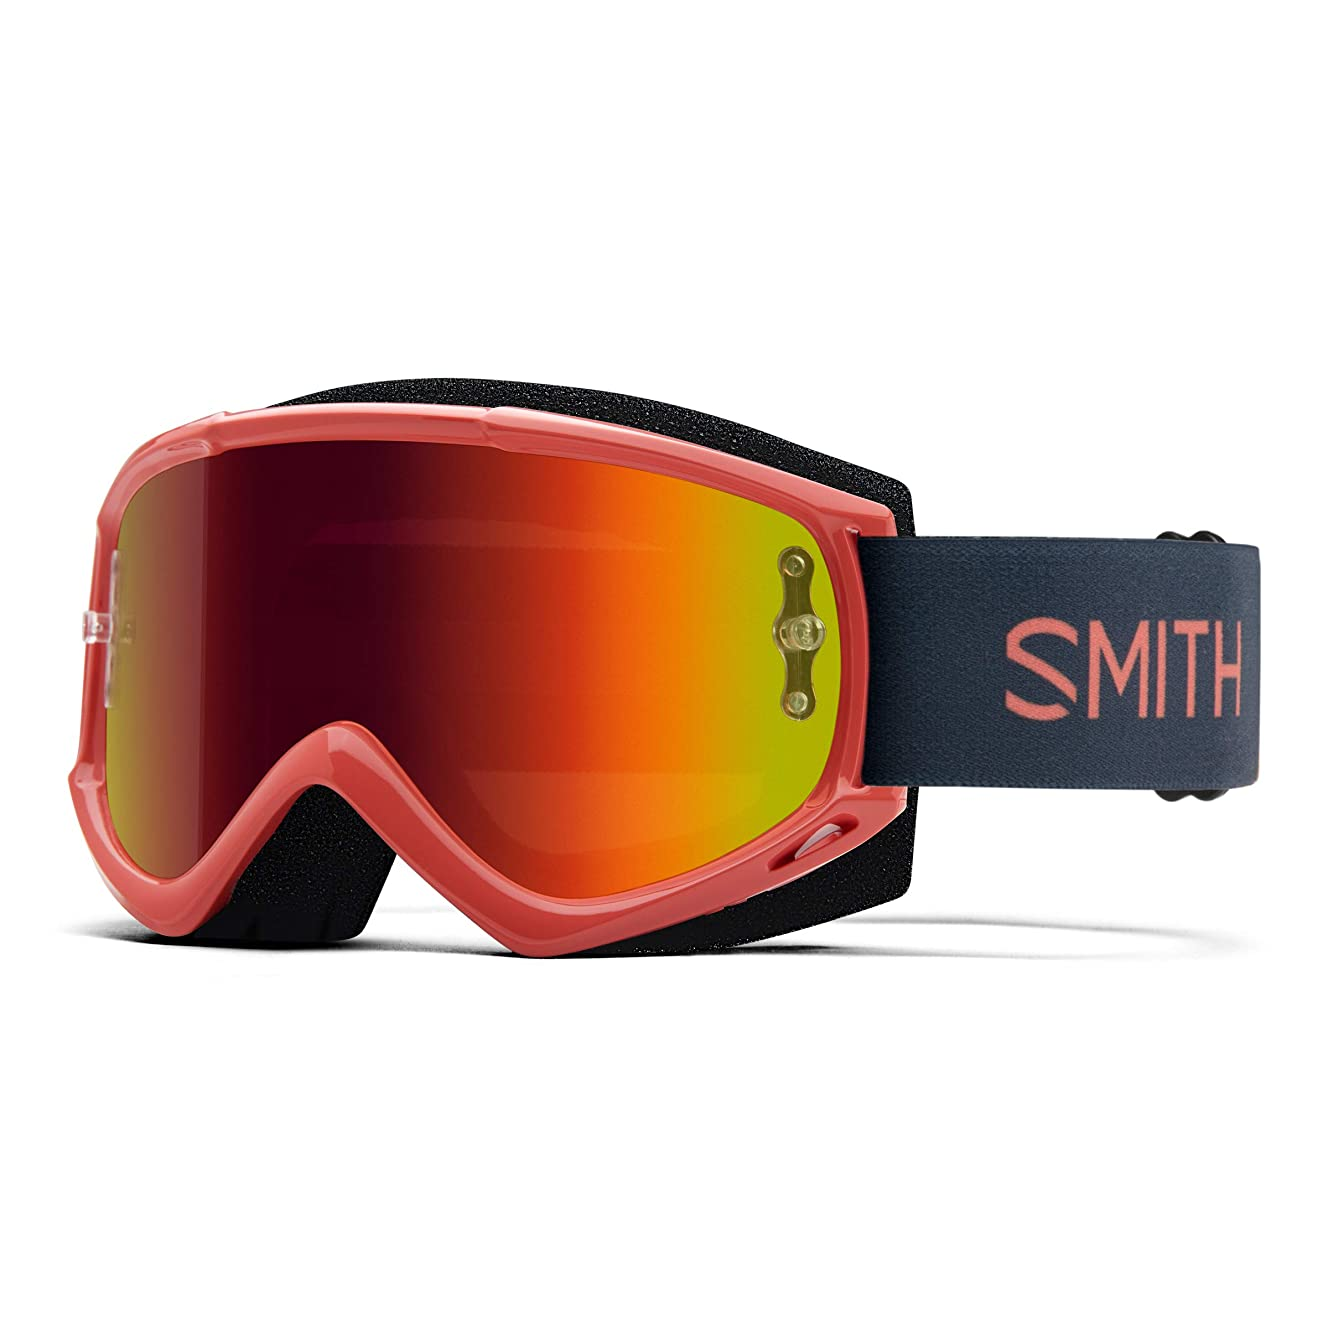 Smith Optics Fuel V.1 Adult Off-Road Cycling Goggles - Red Rock/Red Mirror/One Size